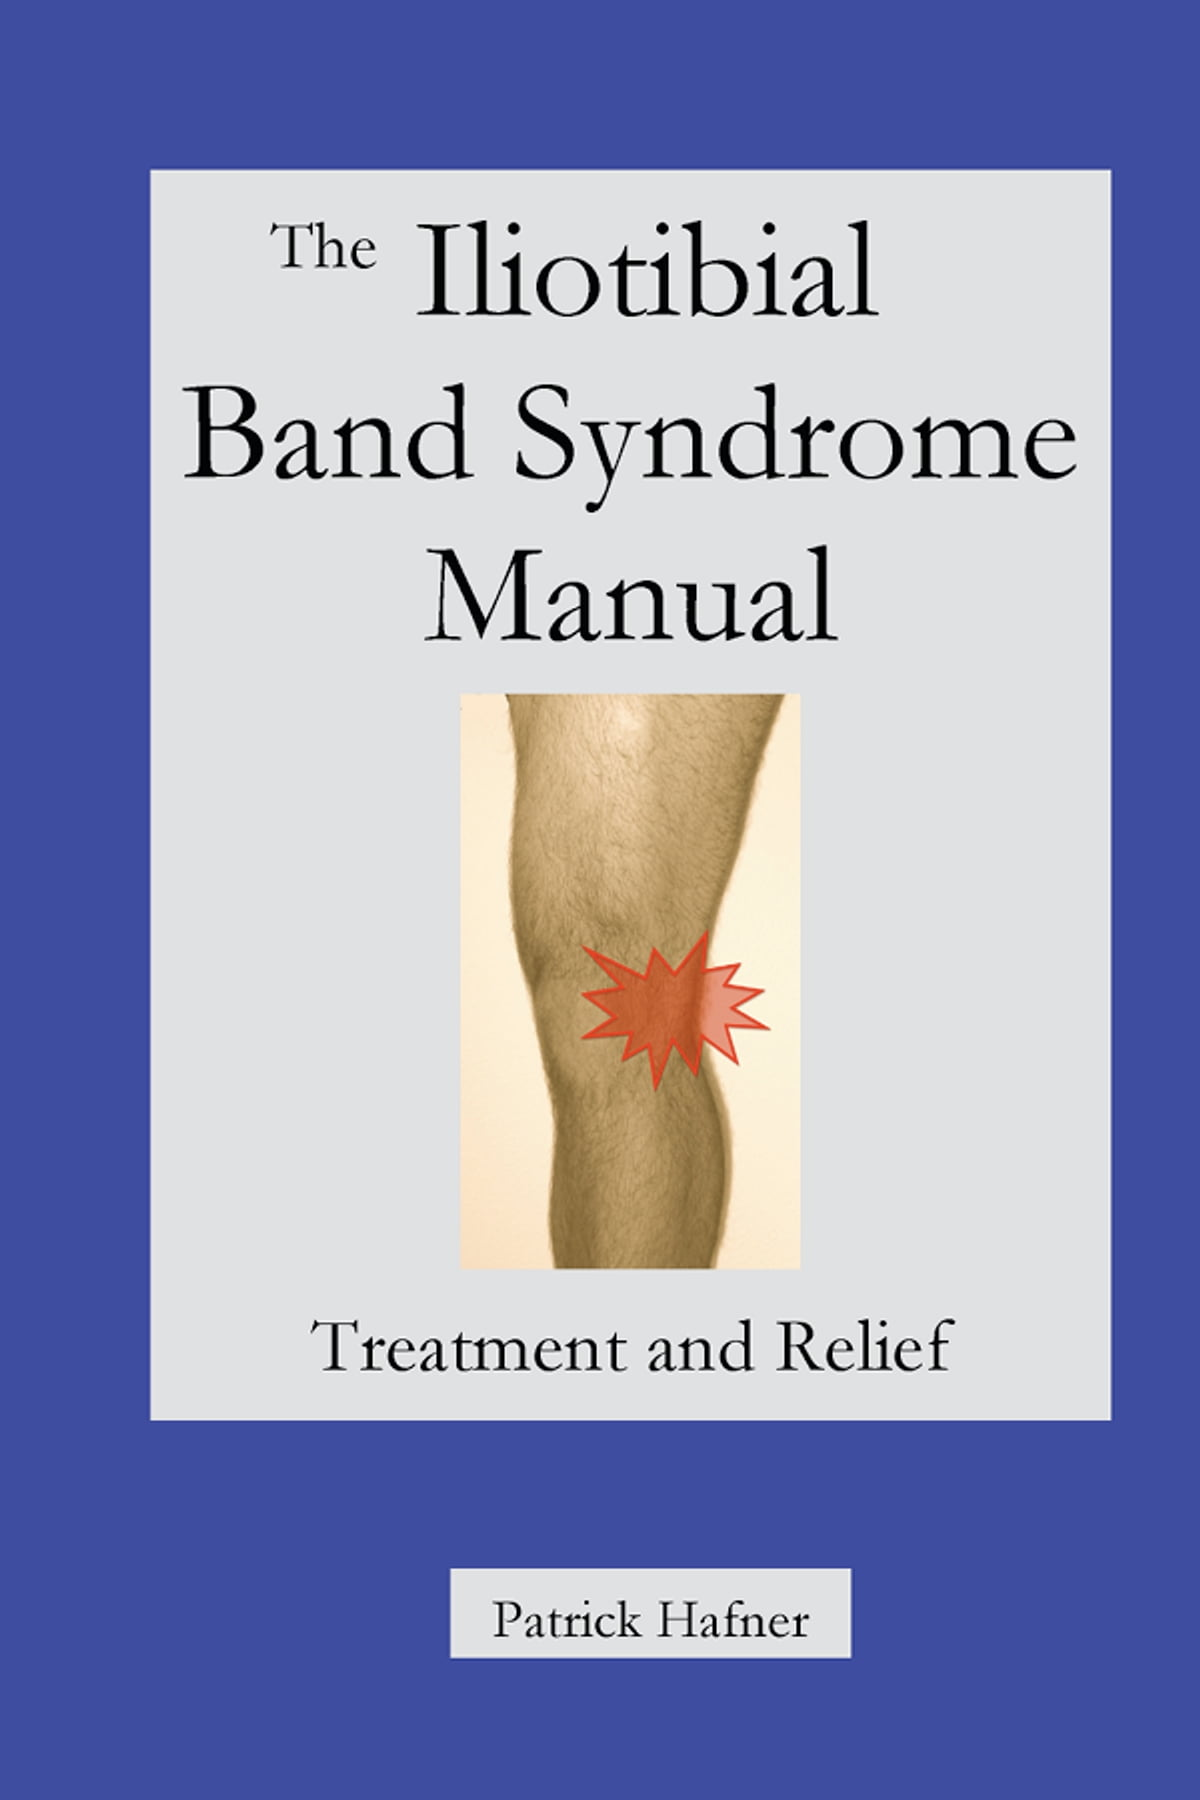 The Iliotibial Band Syndrome Manual Ebook By Patrick Hafner